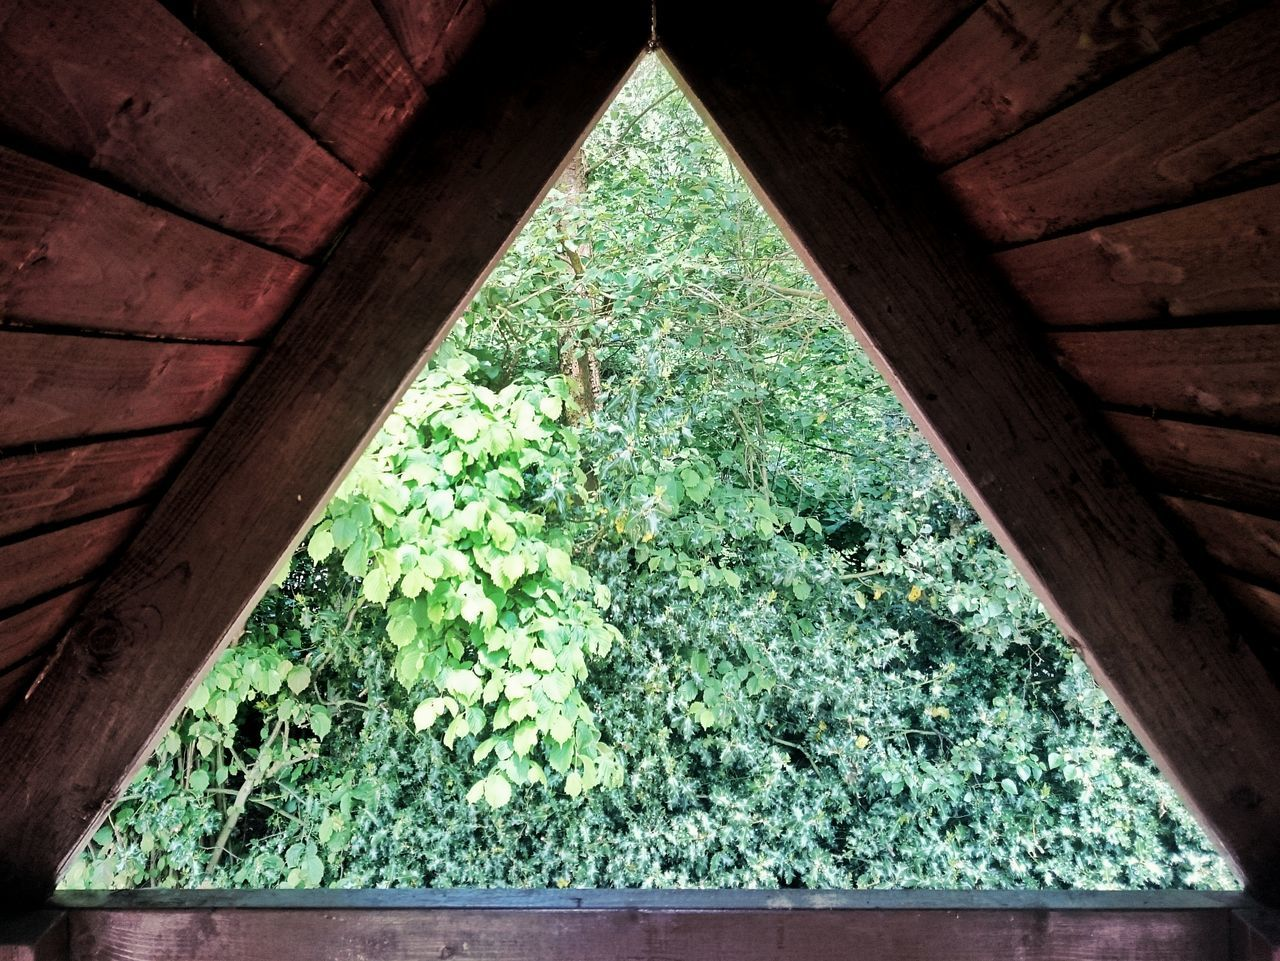 Inside Outside // Tree House Looking Out Triangle Trees Taking Photos Full Frame Photo Mike Whitby Stock Image Outdoors Stock Photo No People Eyeem Market EyeEm Best Shots Eye4photography  EyeEm Gallery Wood Play House Play Area Garden Photography Garden Looking EyeEm Nature Lover Play Time Fun